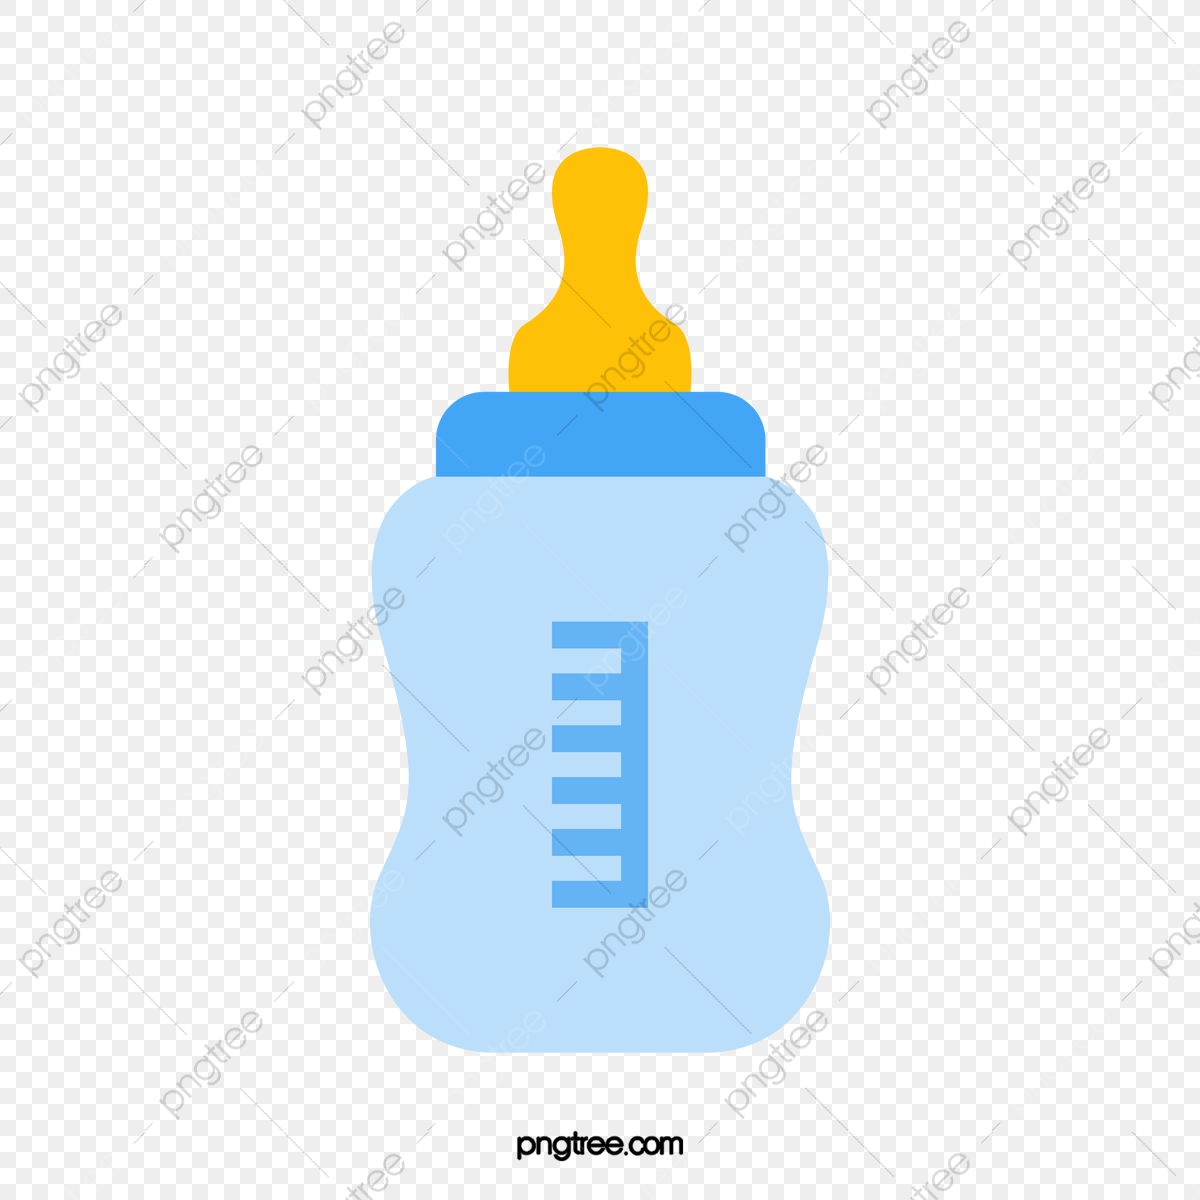 Feeding Bottle Bottle Clipart Baby Bottle Png Transparent Clipart Image And Psd File For Free Download We offer you for free download top of baby bottle clipart pictures. https pngtree com freepng feeding bottle 792888 html